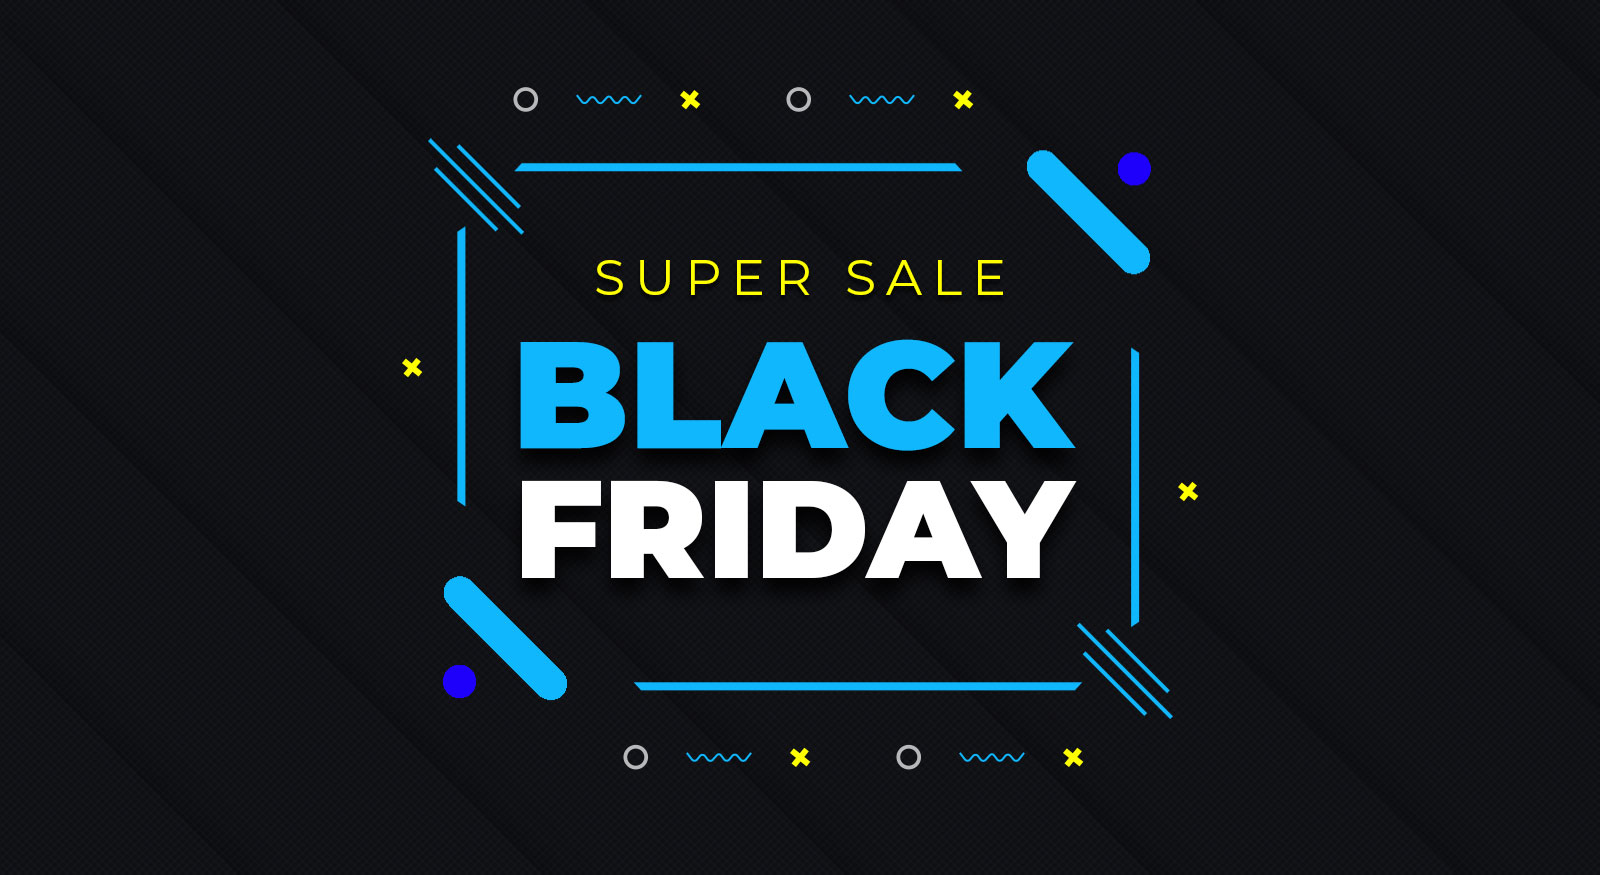 black-friday-special-brisbane-onepoint